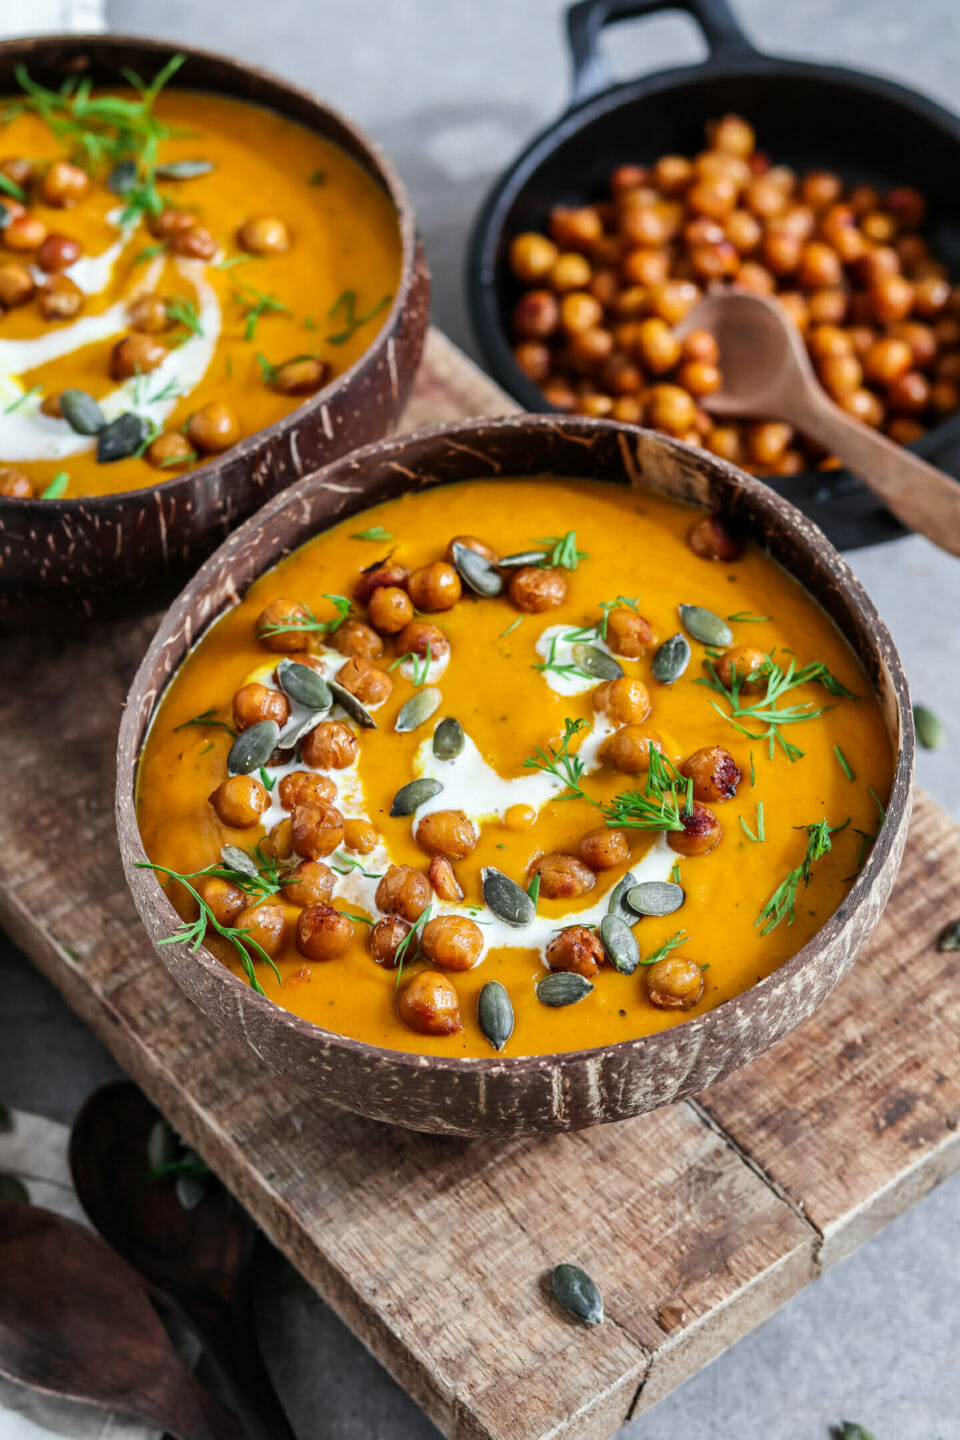 Creamy pumpkin soup served with coconut milk, chickpeas and pumpkin seeds